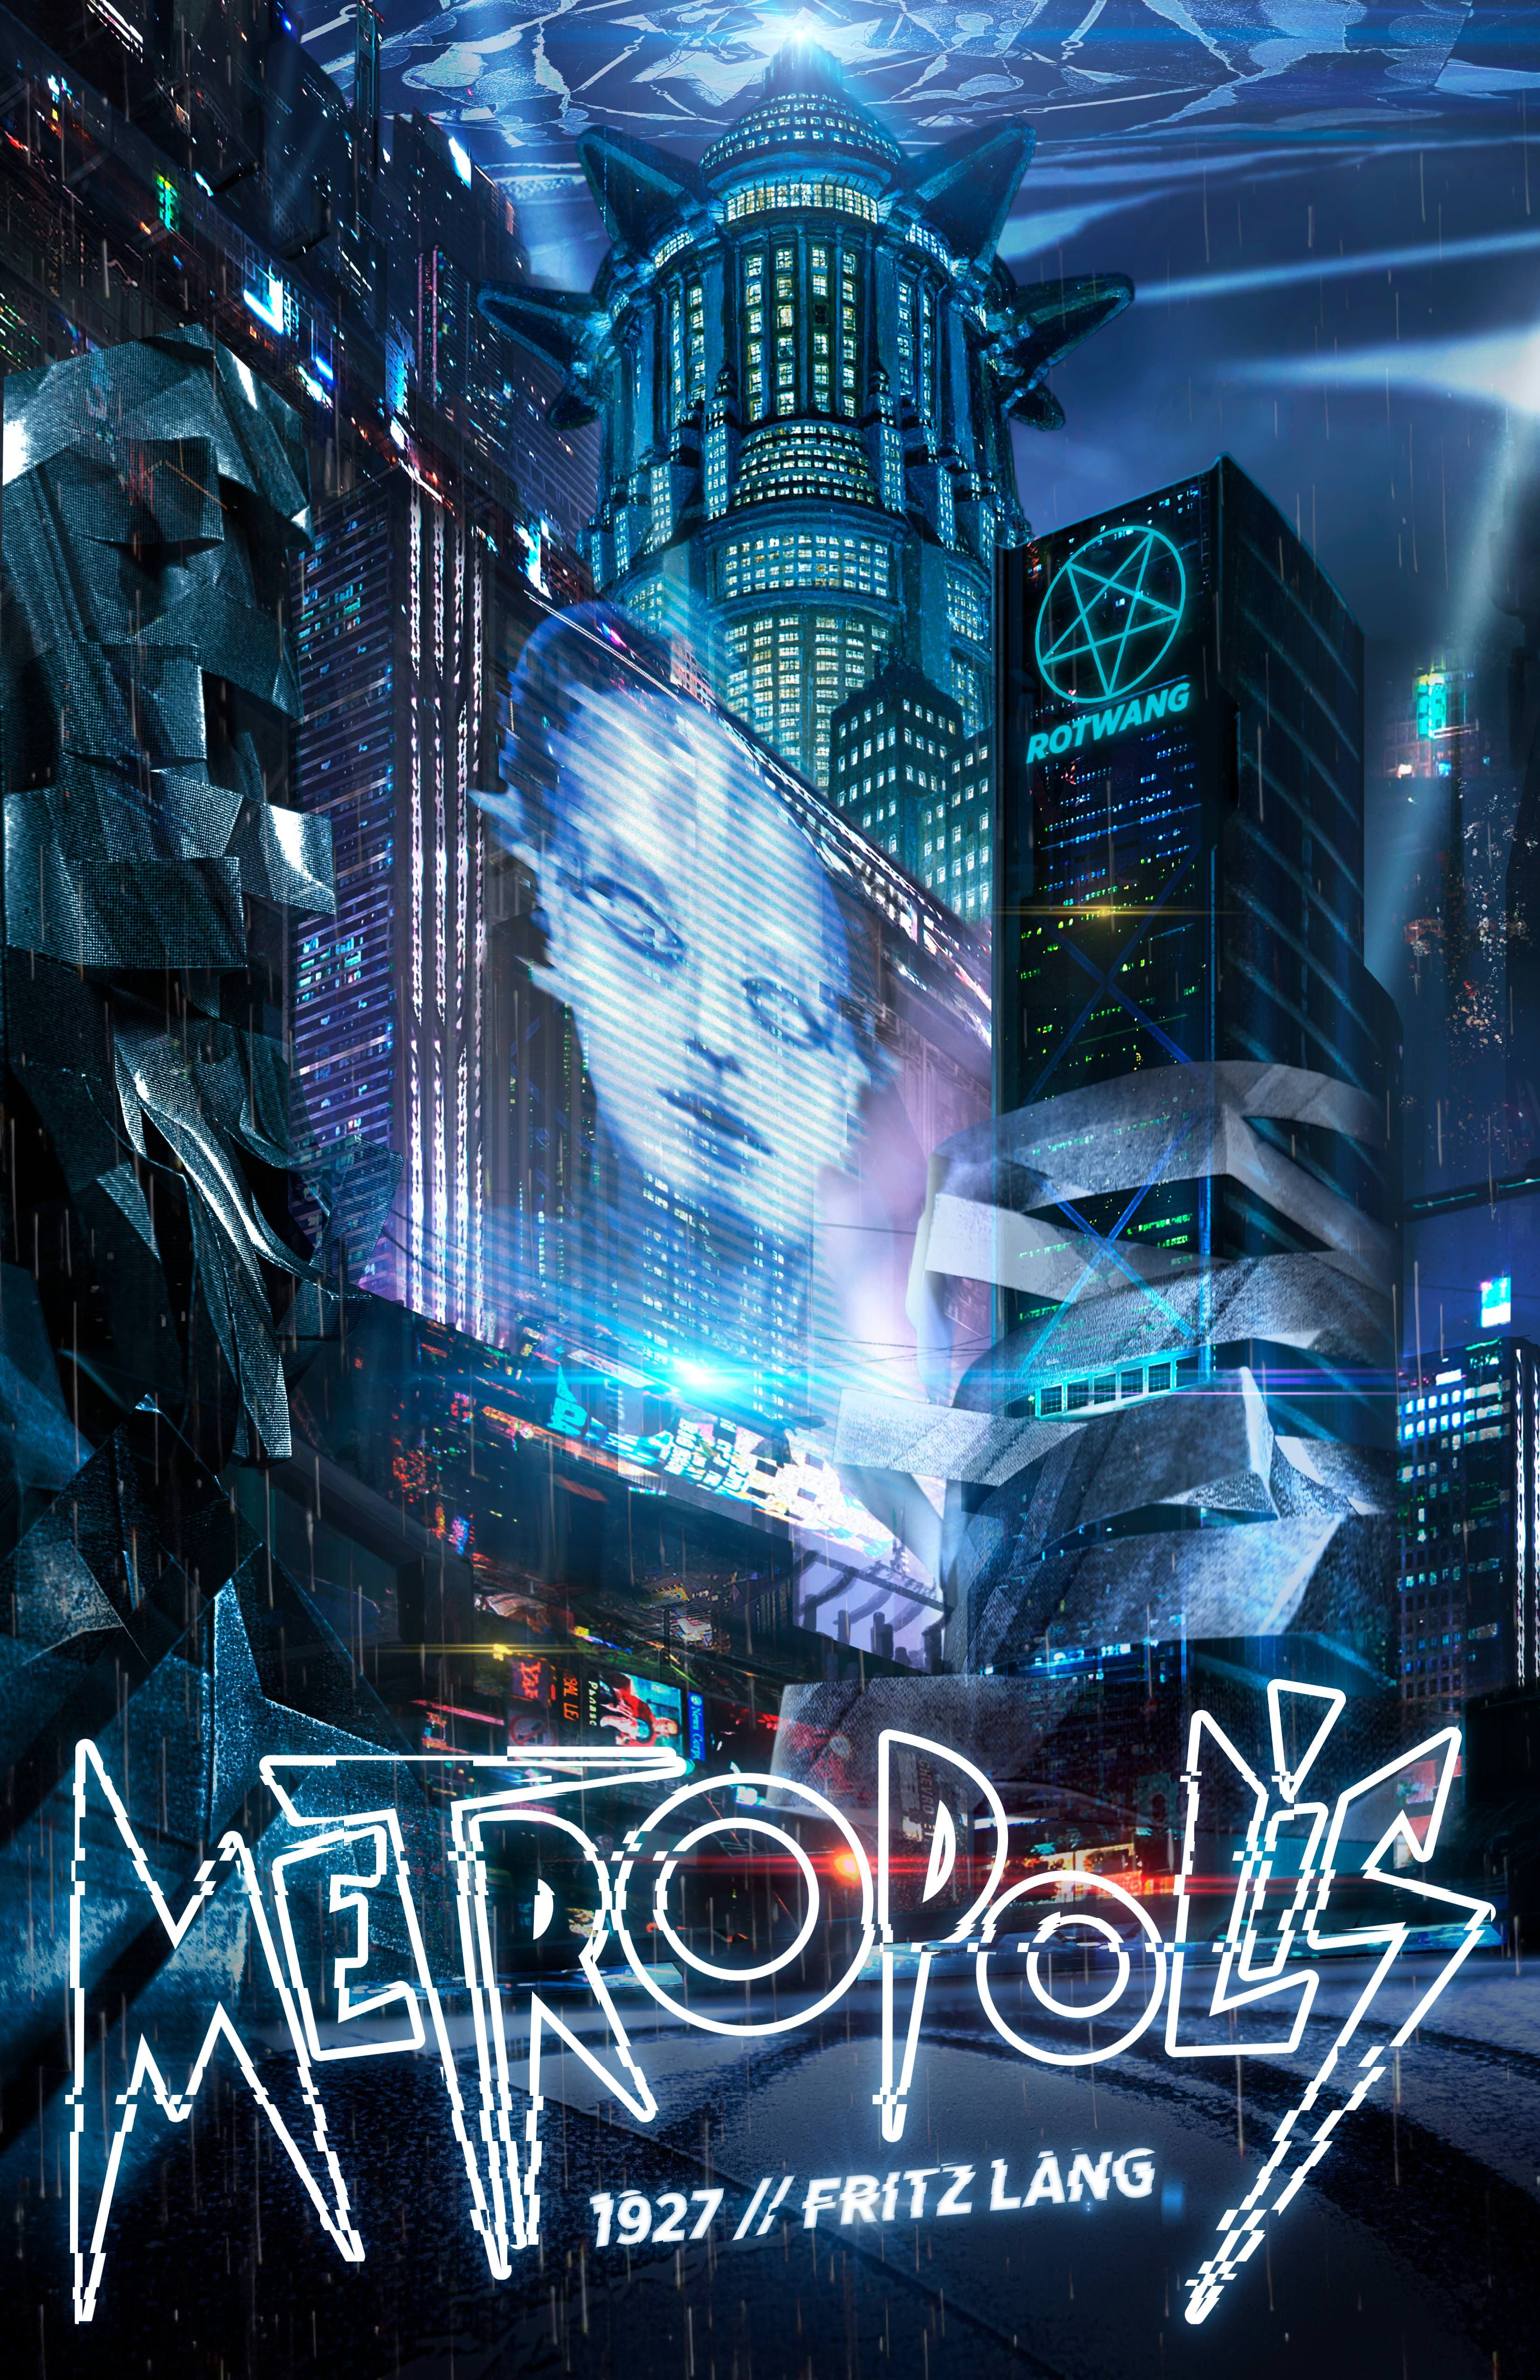 Poster I made for school a futuristic view of Metropolis by Fritz ...